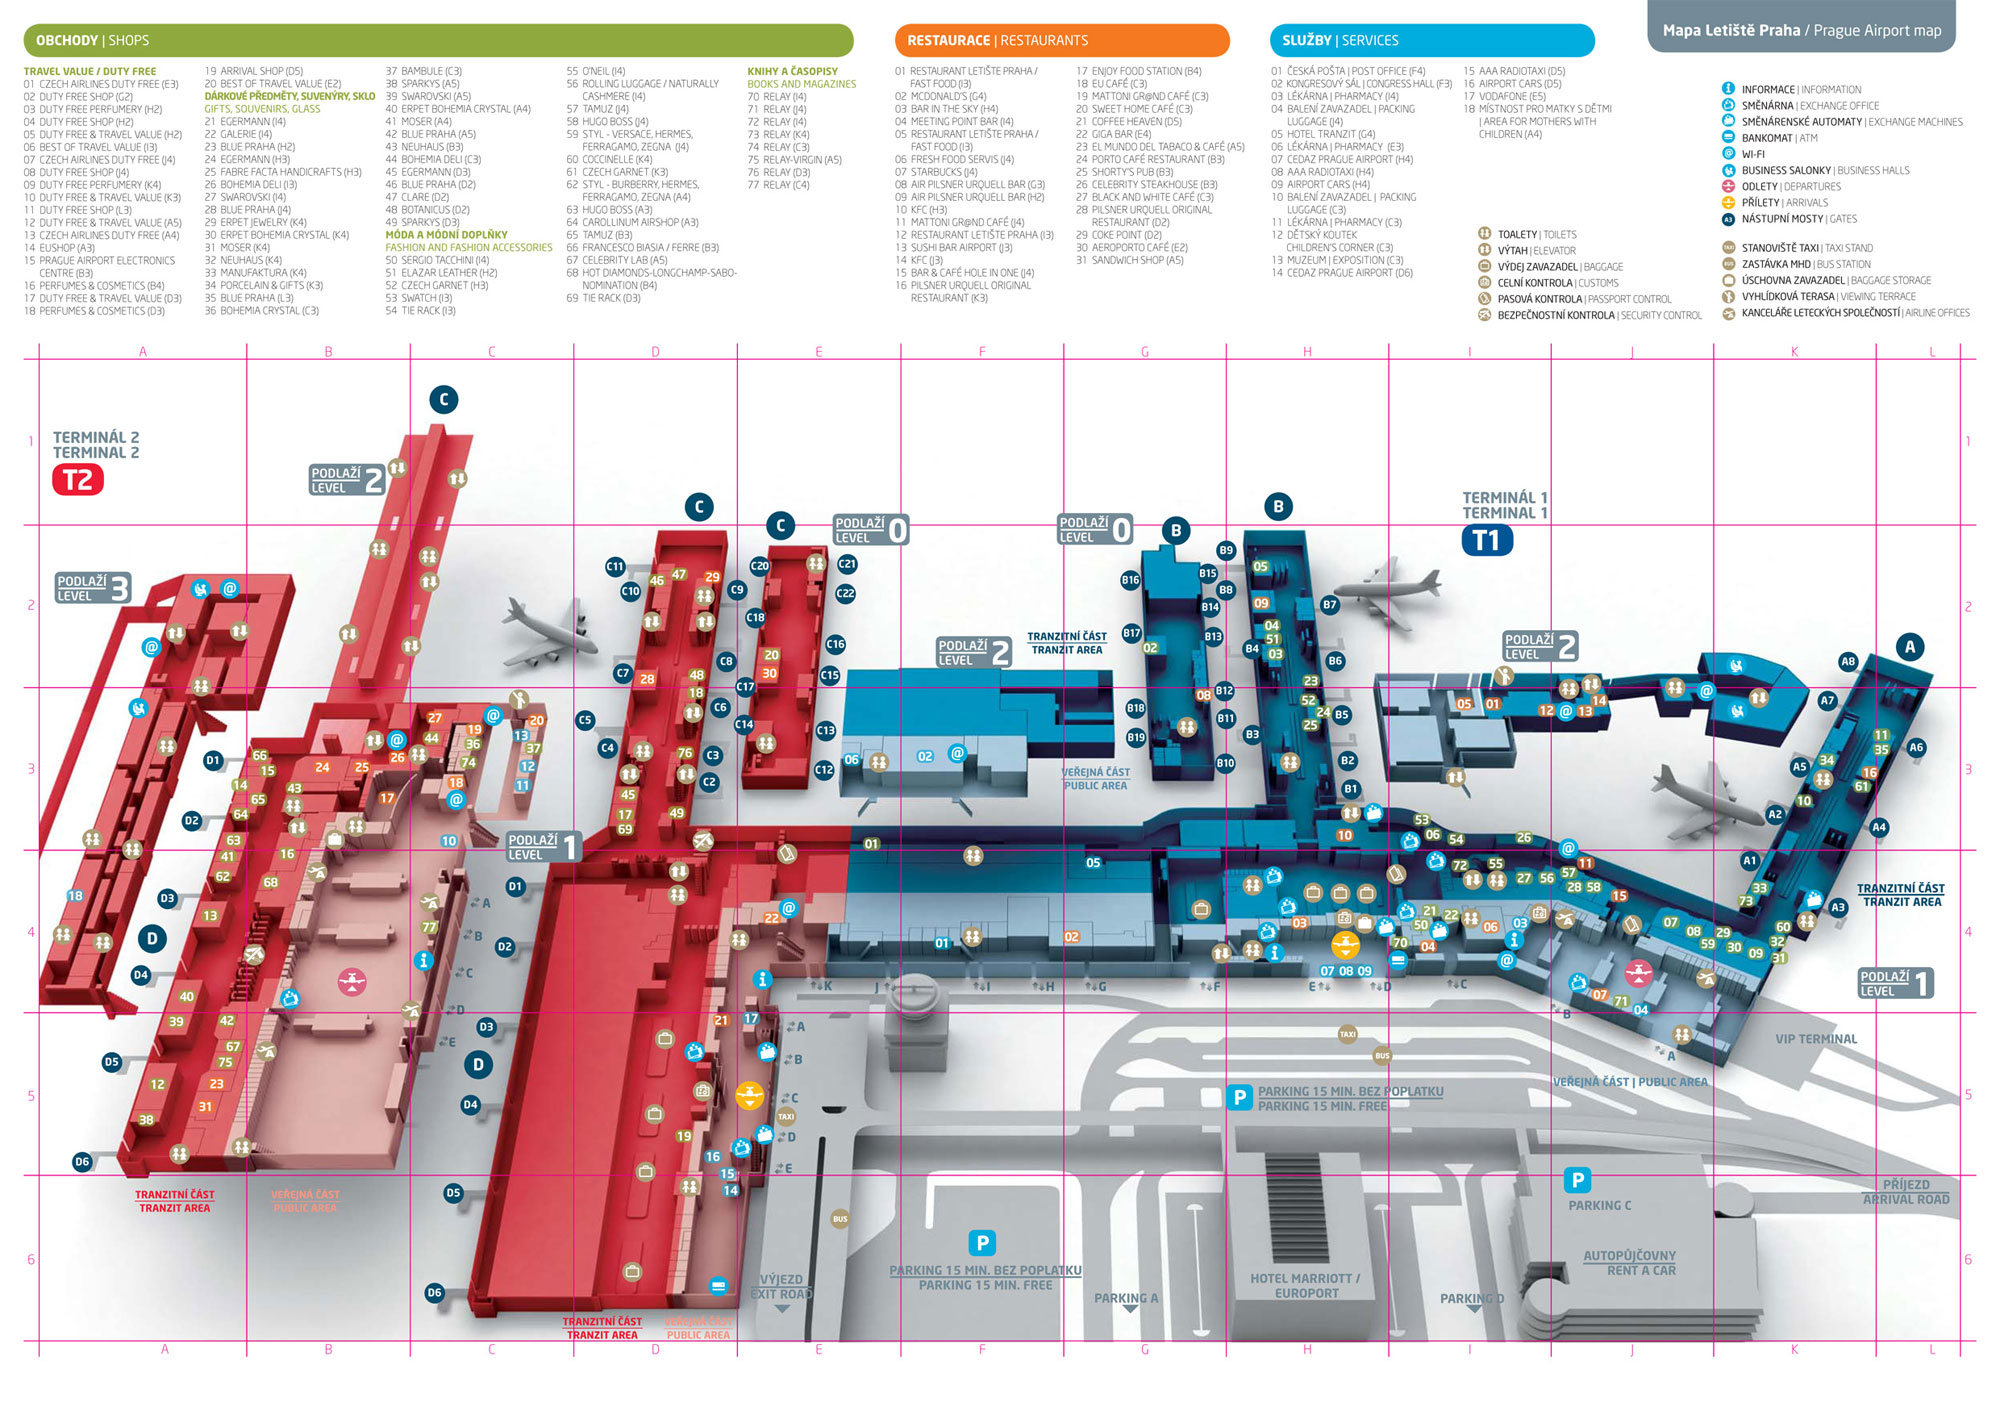 Prague Airport Map Praugue Airport Map Prague